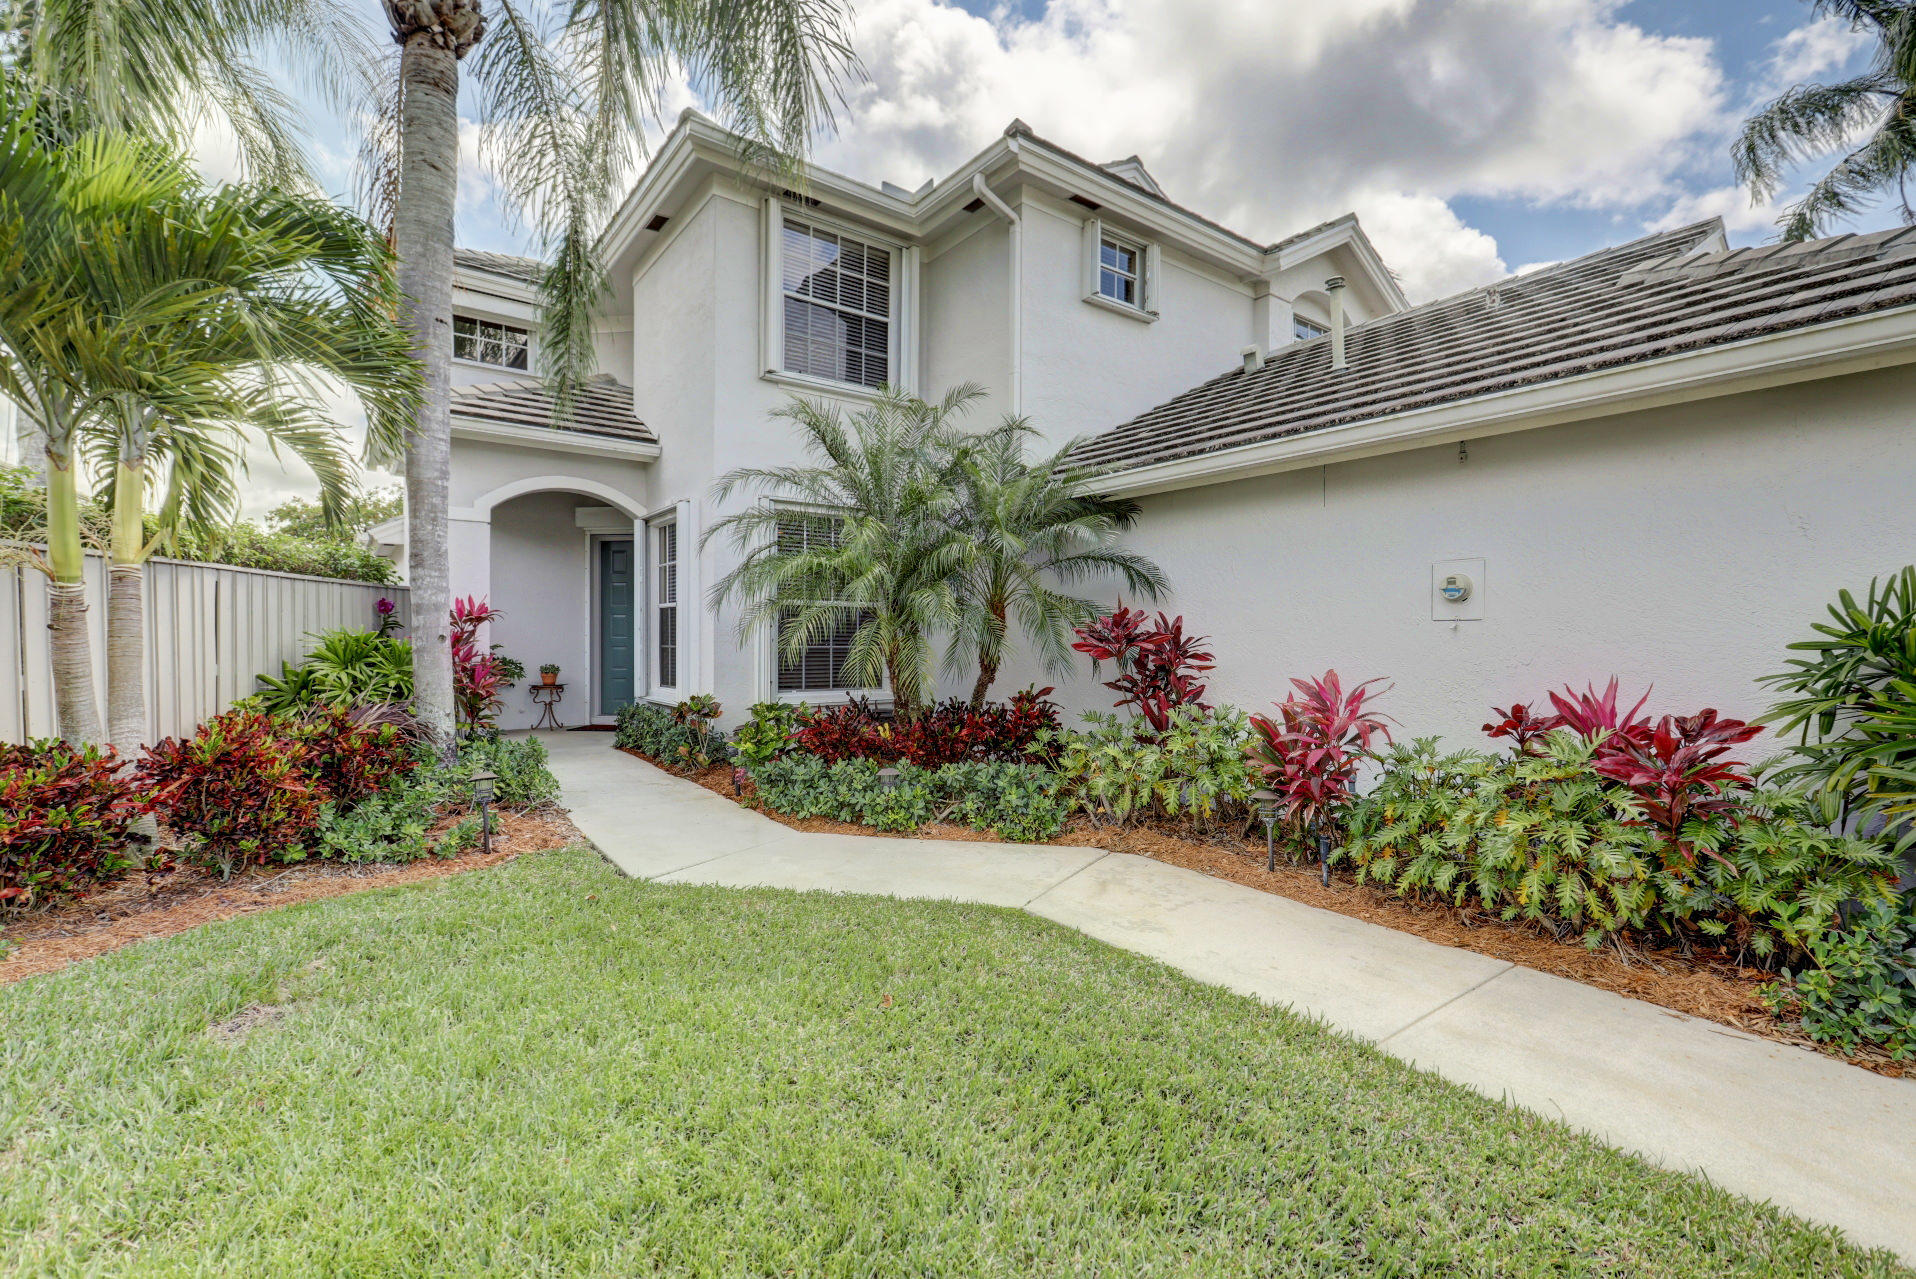 641 Masters Way, Palm Beach Gardens, Florida 33418, 4 Bedrooms Bedrooms, ,3.1 BathroomsBathrooms,A,Single family,Masters,RX-10519333